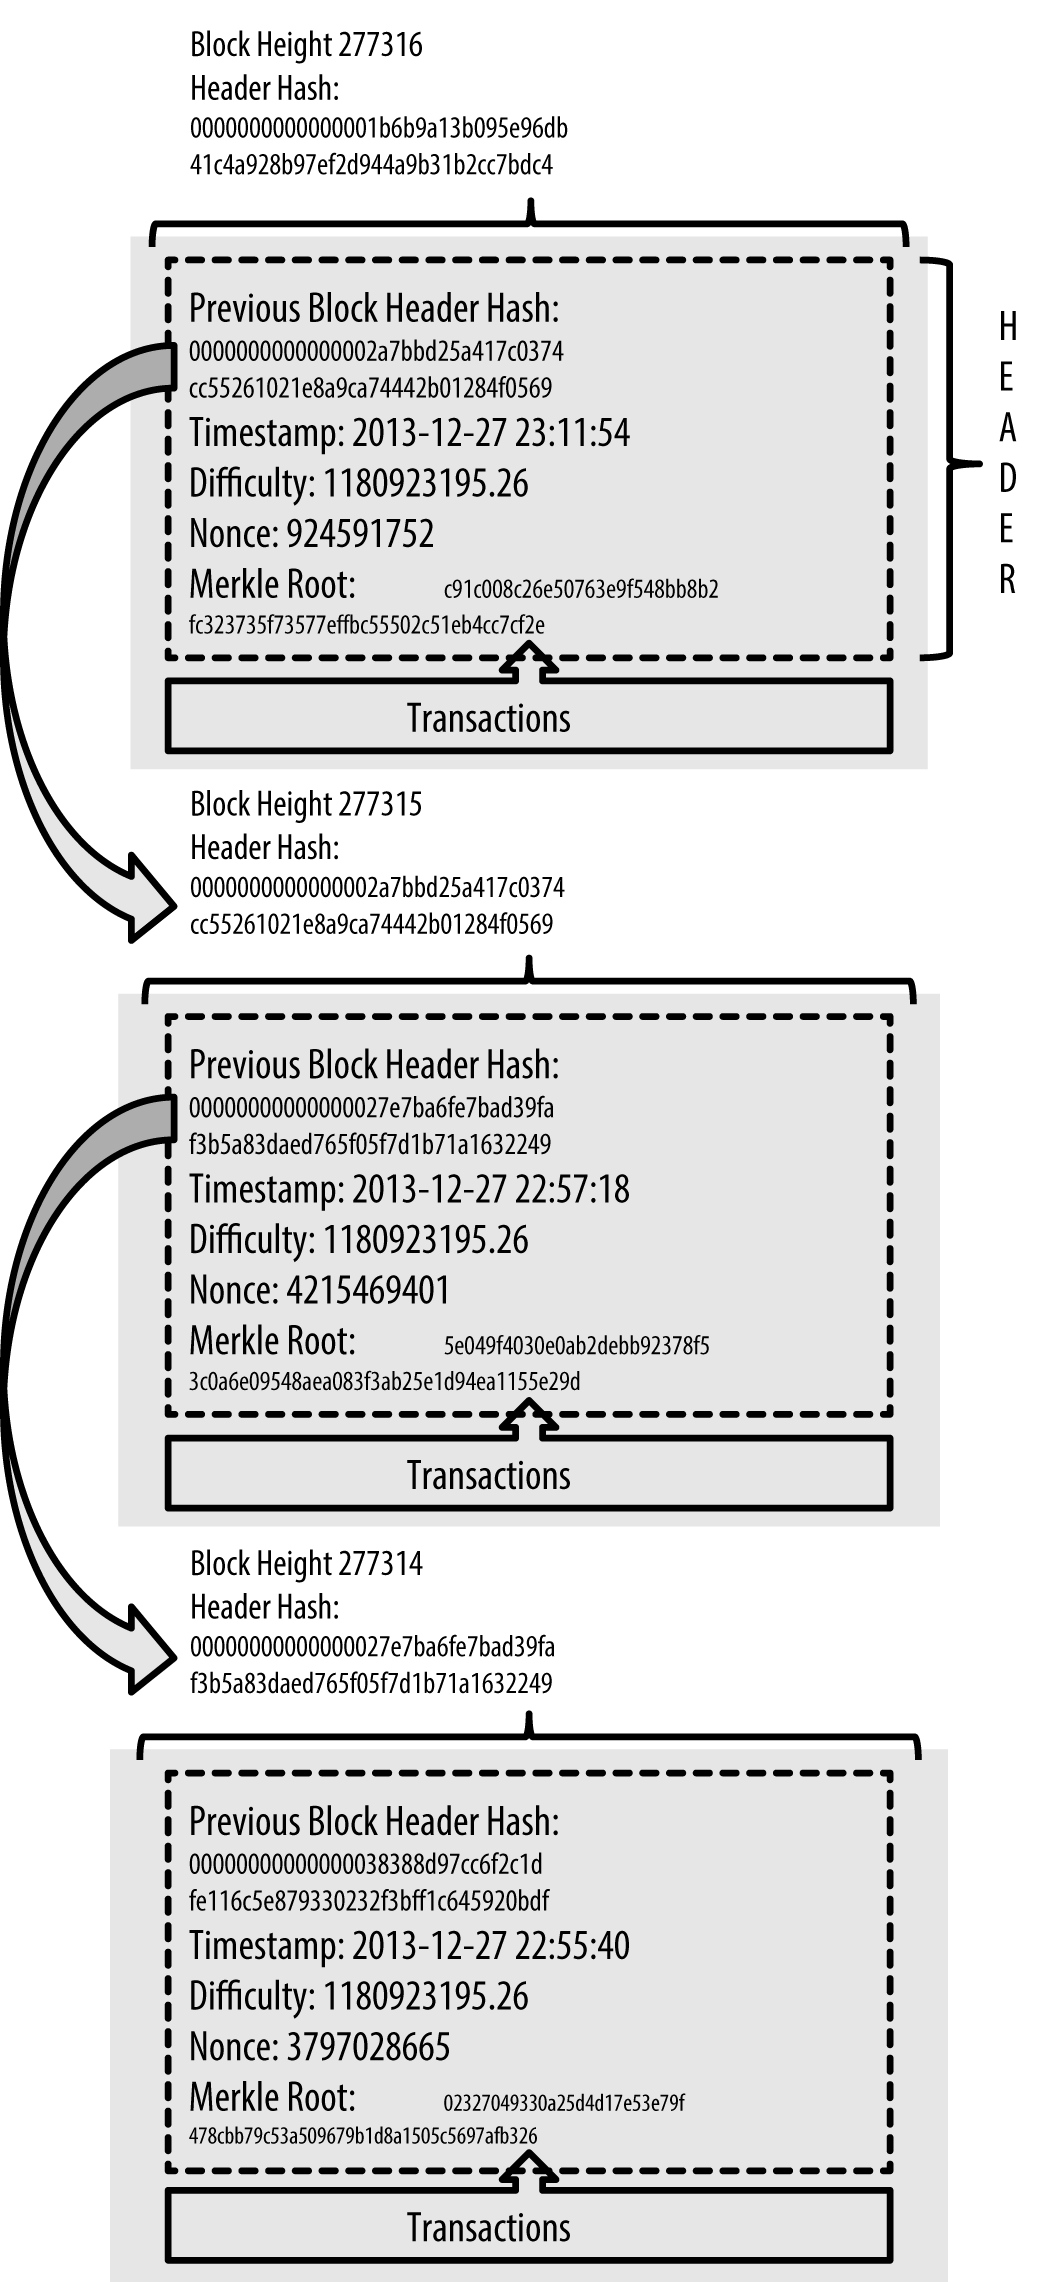 Blocks linked in a chain, by reference to the previous block header hash